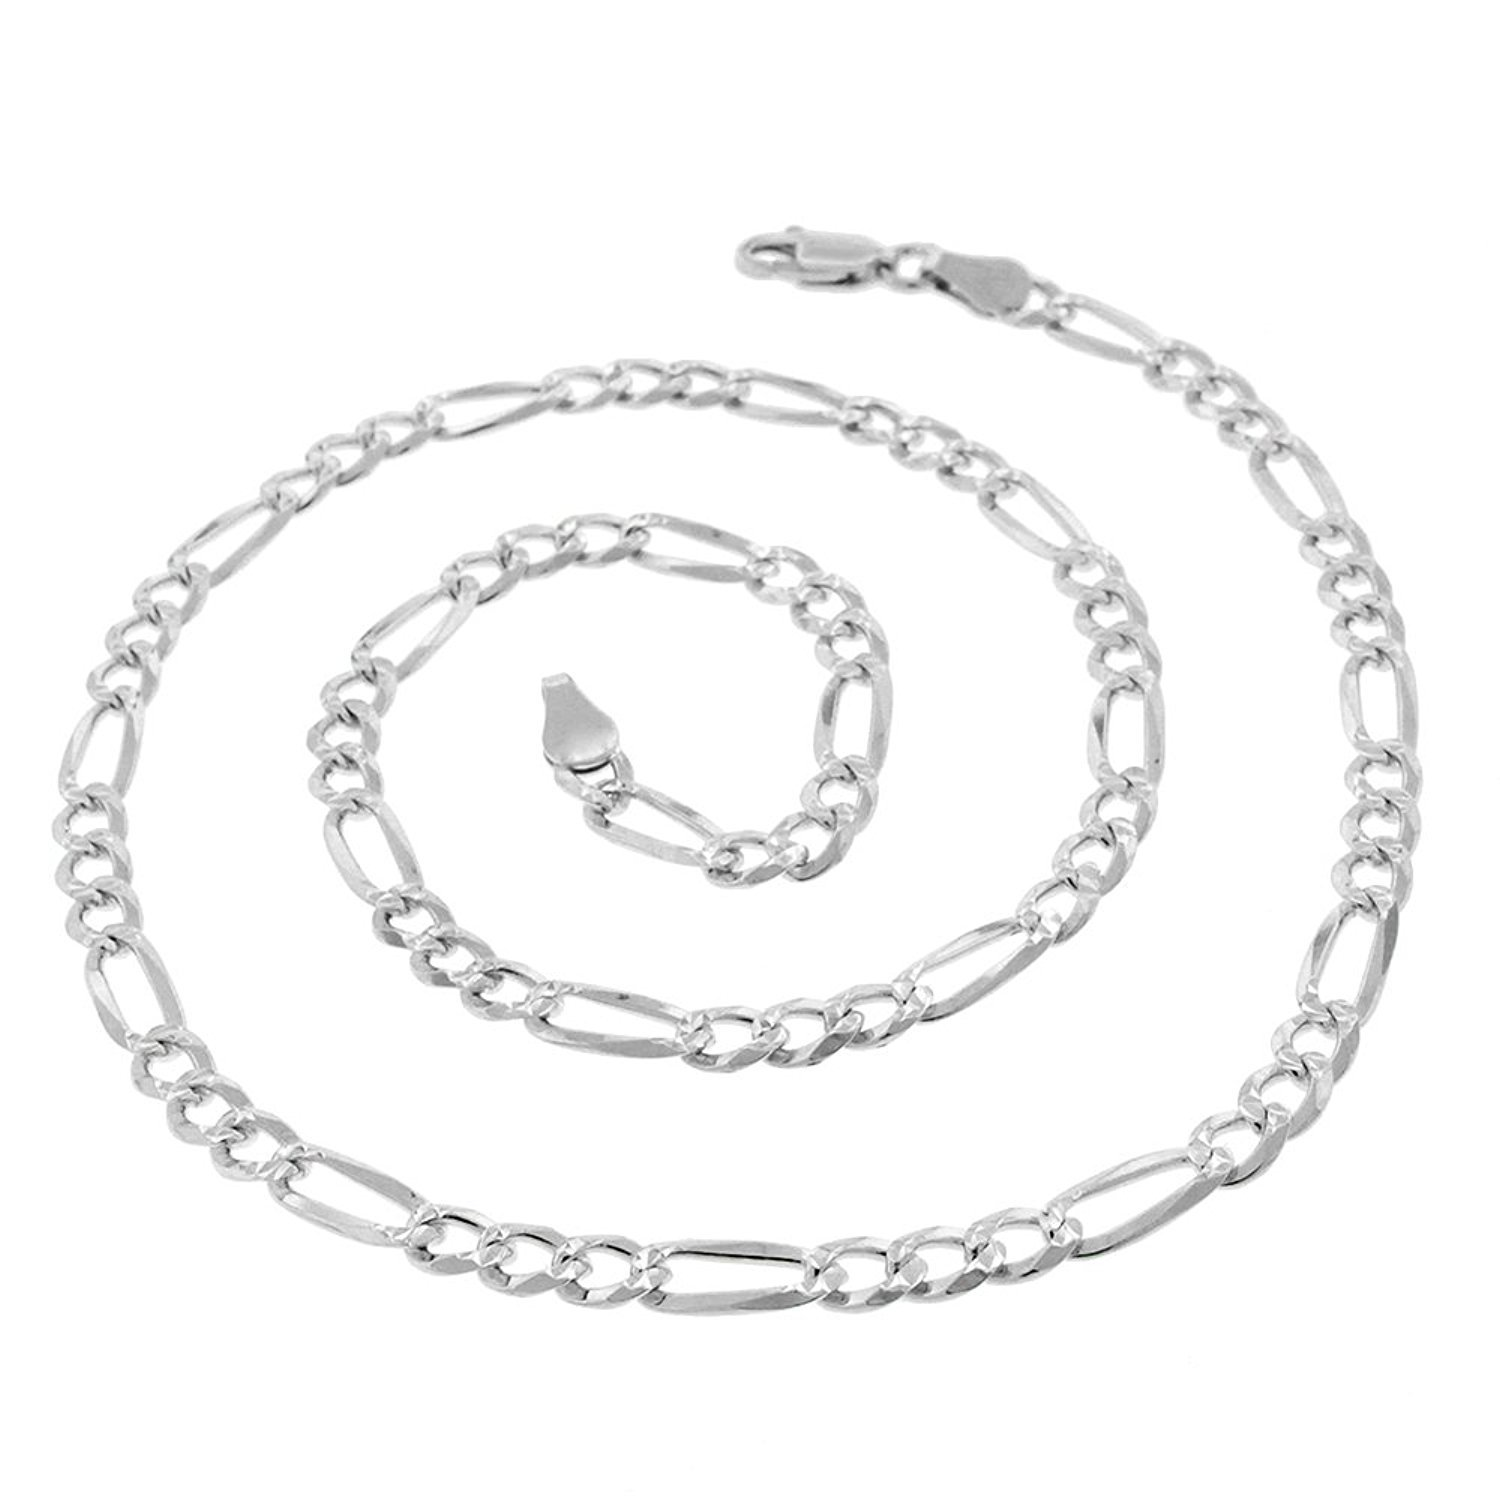 Sterling Silver Italian 4mm Figaro Link Diamond-Cut ITProLux Solid 925 Necklace Chain 16'' - 30'' (20) by In Style Designz (Image #1)